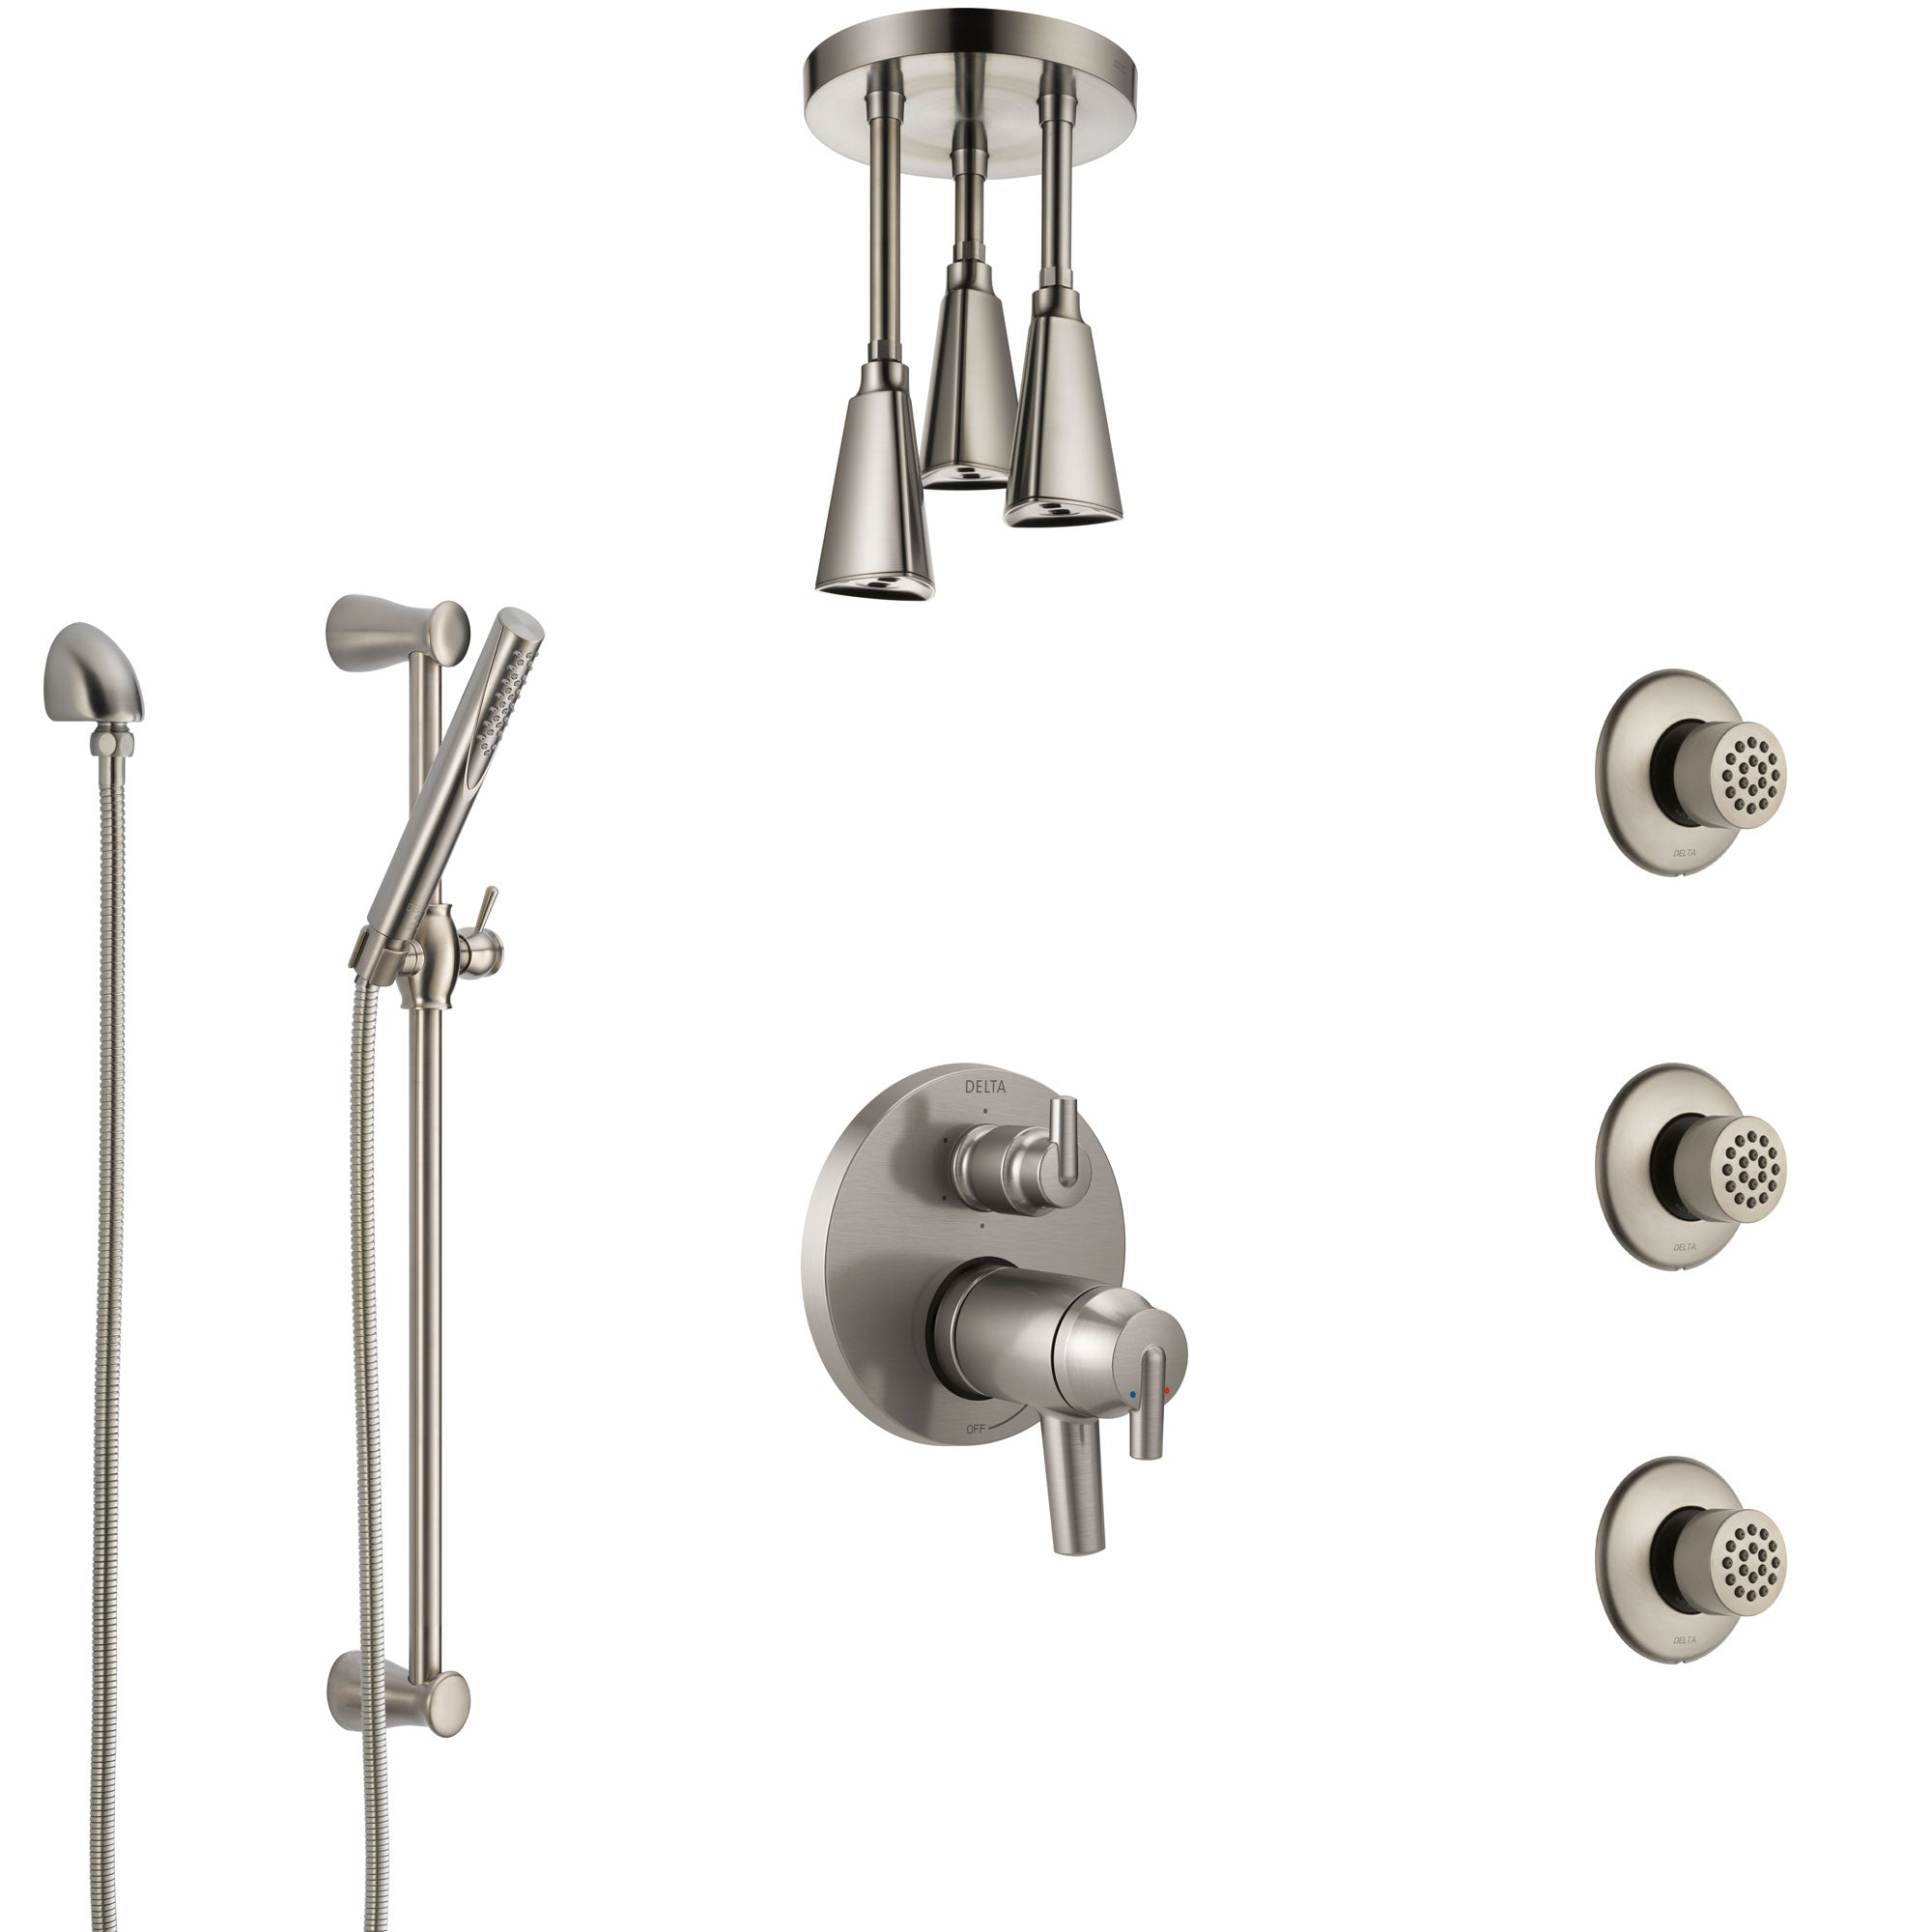 Delta Trinsic Dual Thermostatic Control Stainless Steel Finish Shower System, Ceiling Showerhead, 3 Body Jets, Hand Spray SS27T959SS7